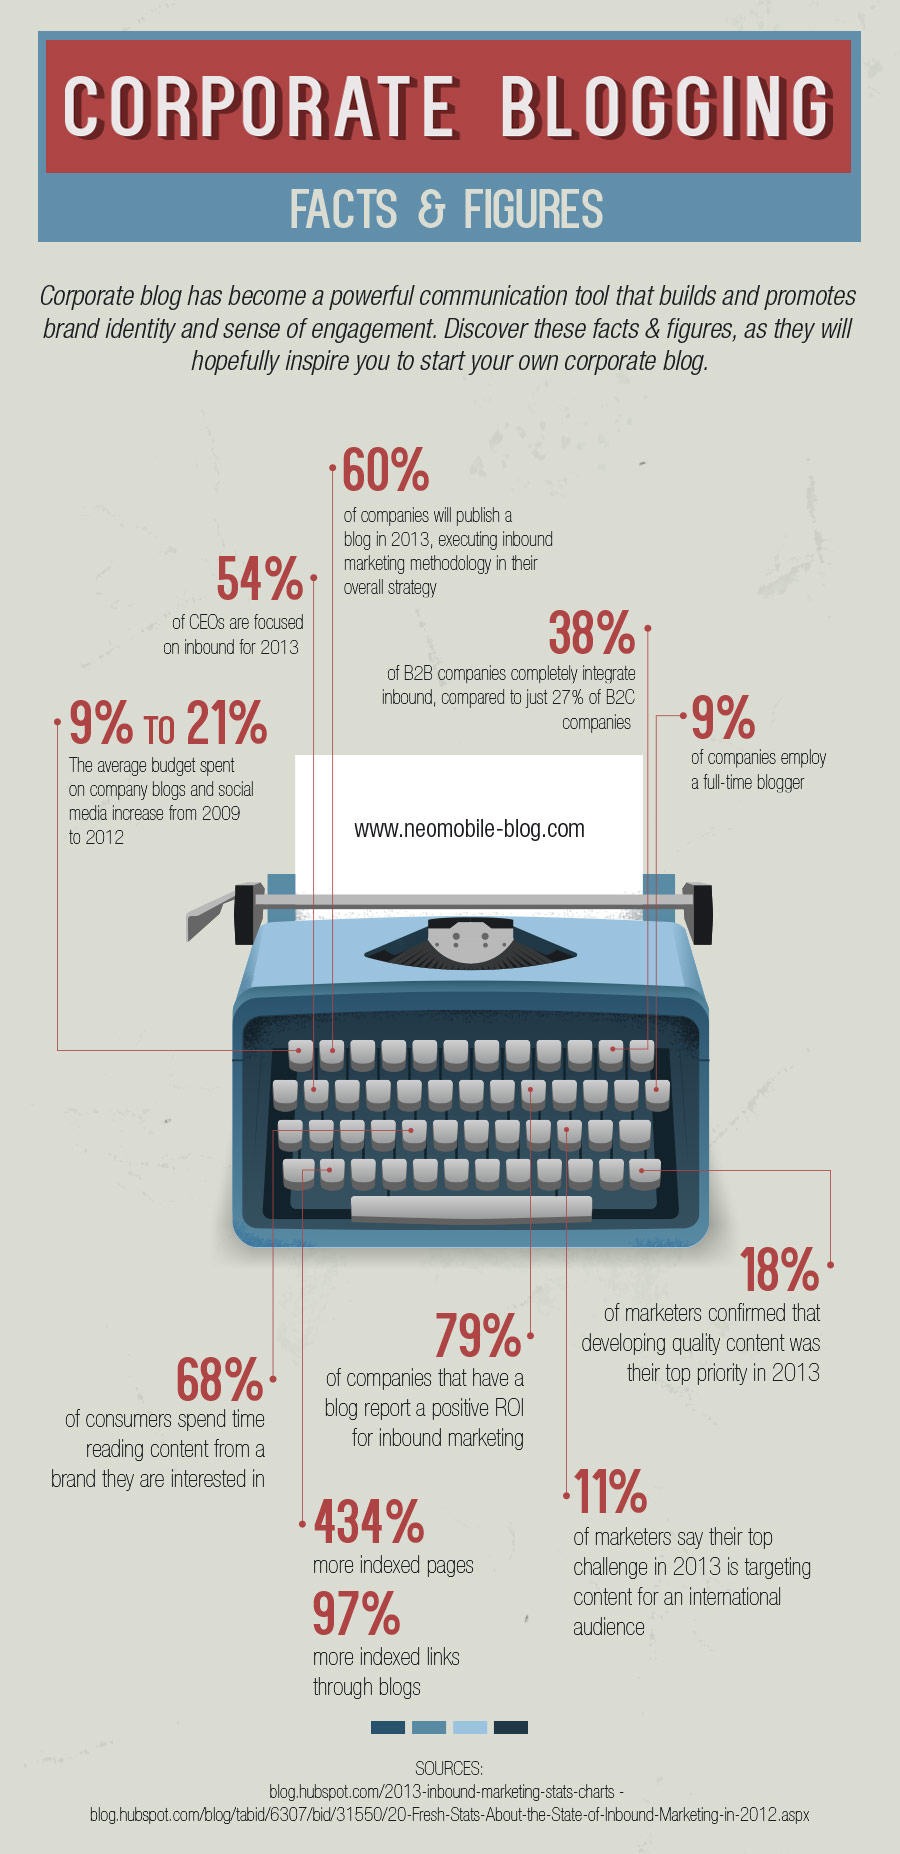 Corporate Blogging Facts and Figures